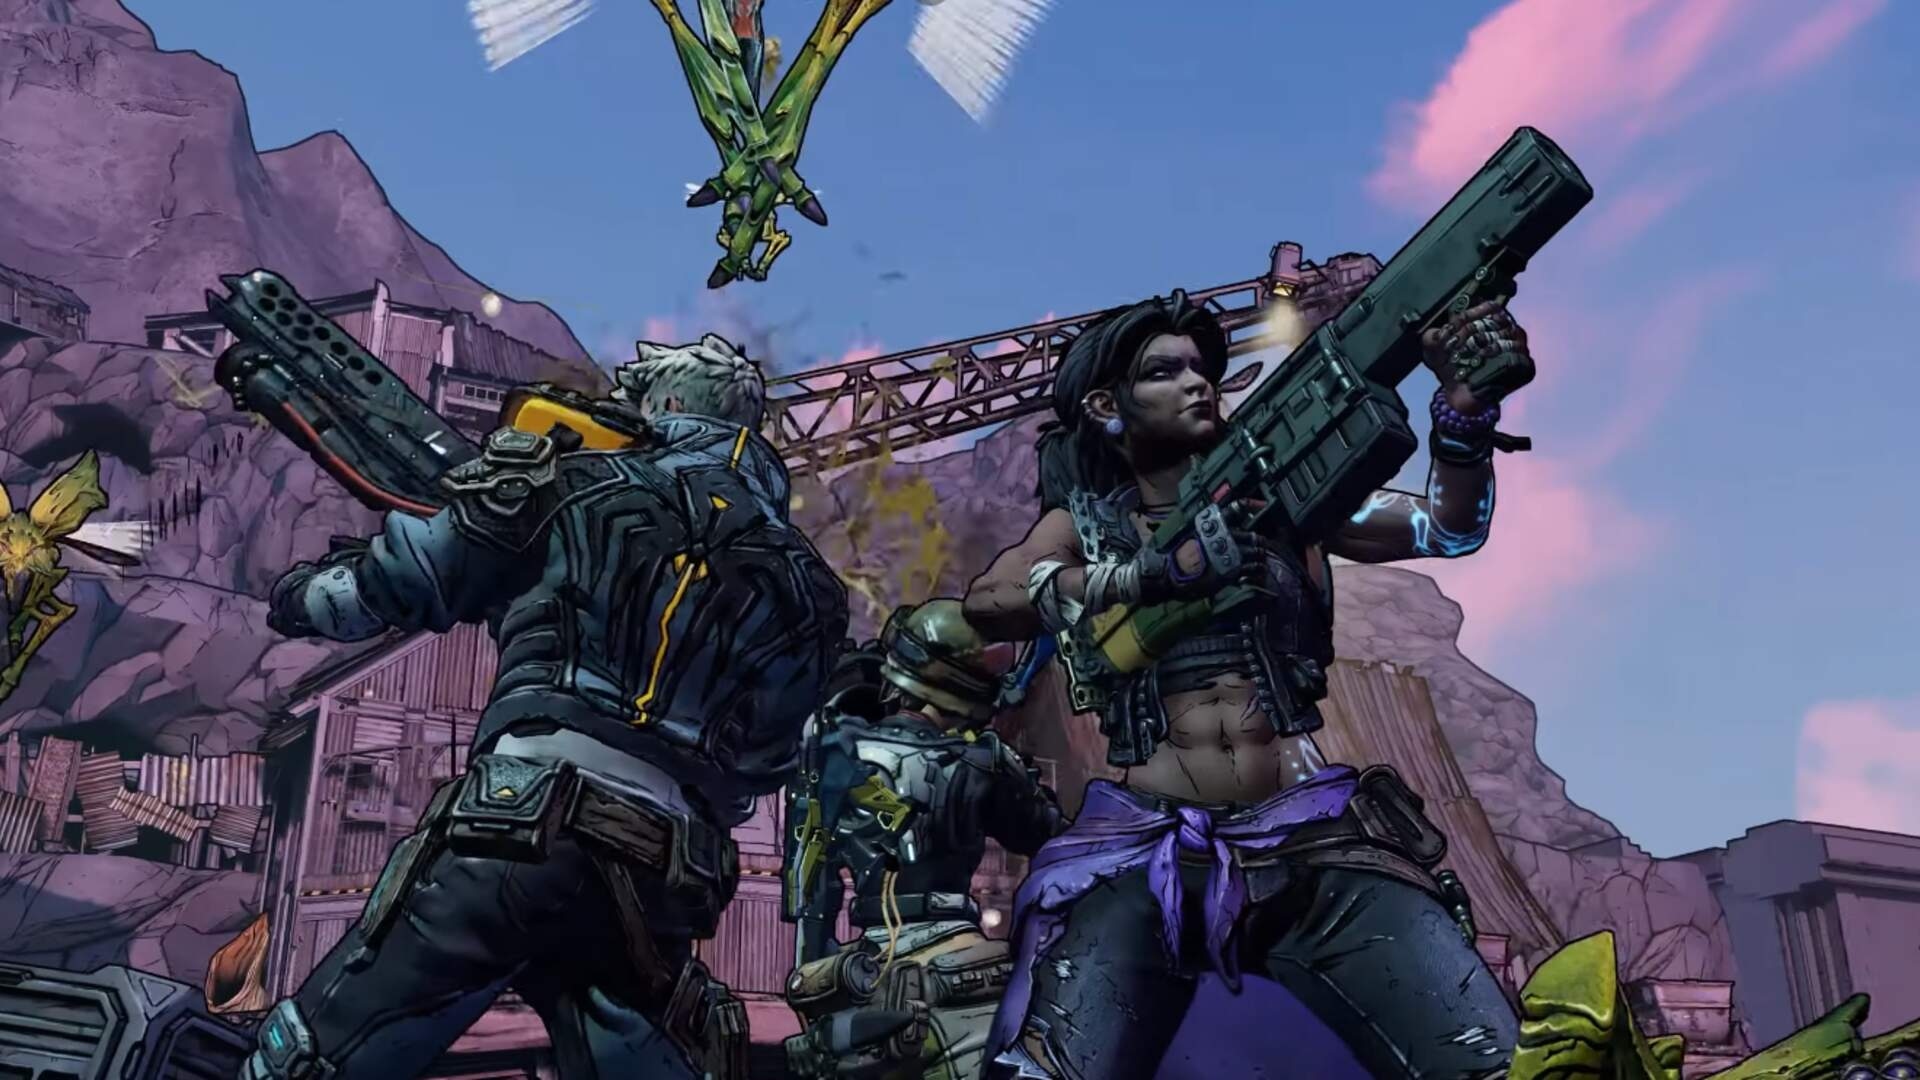 Borderlands 3 Officially Announced, Watch the Trailer Here